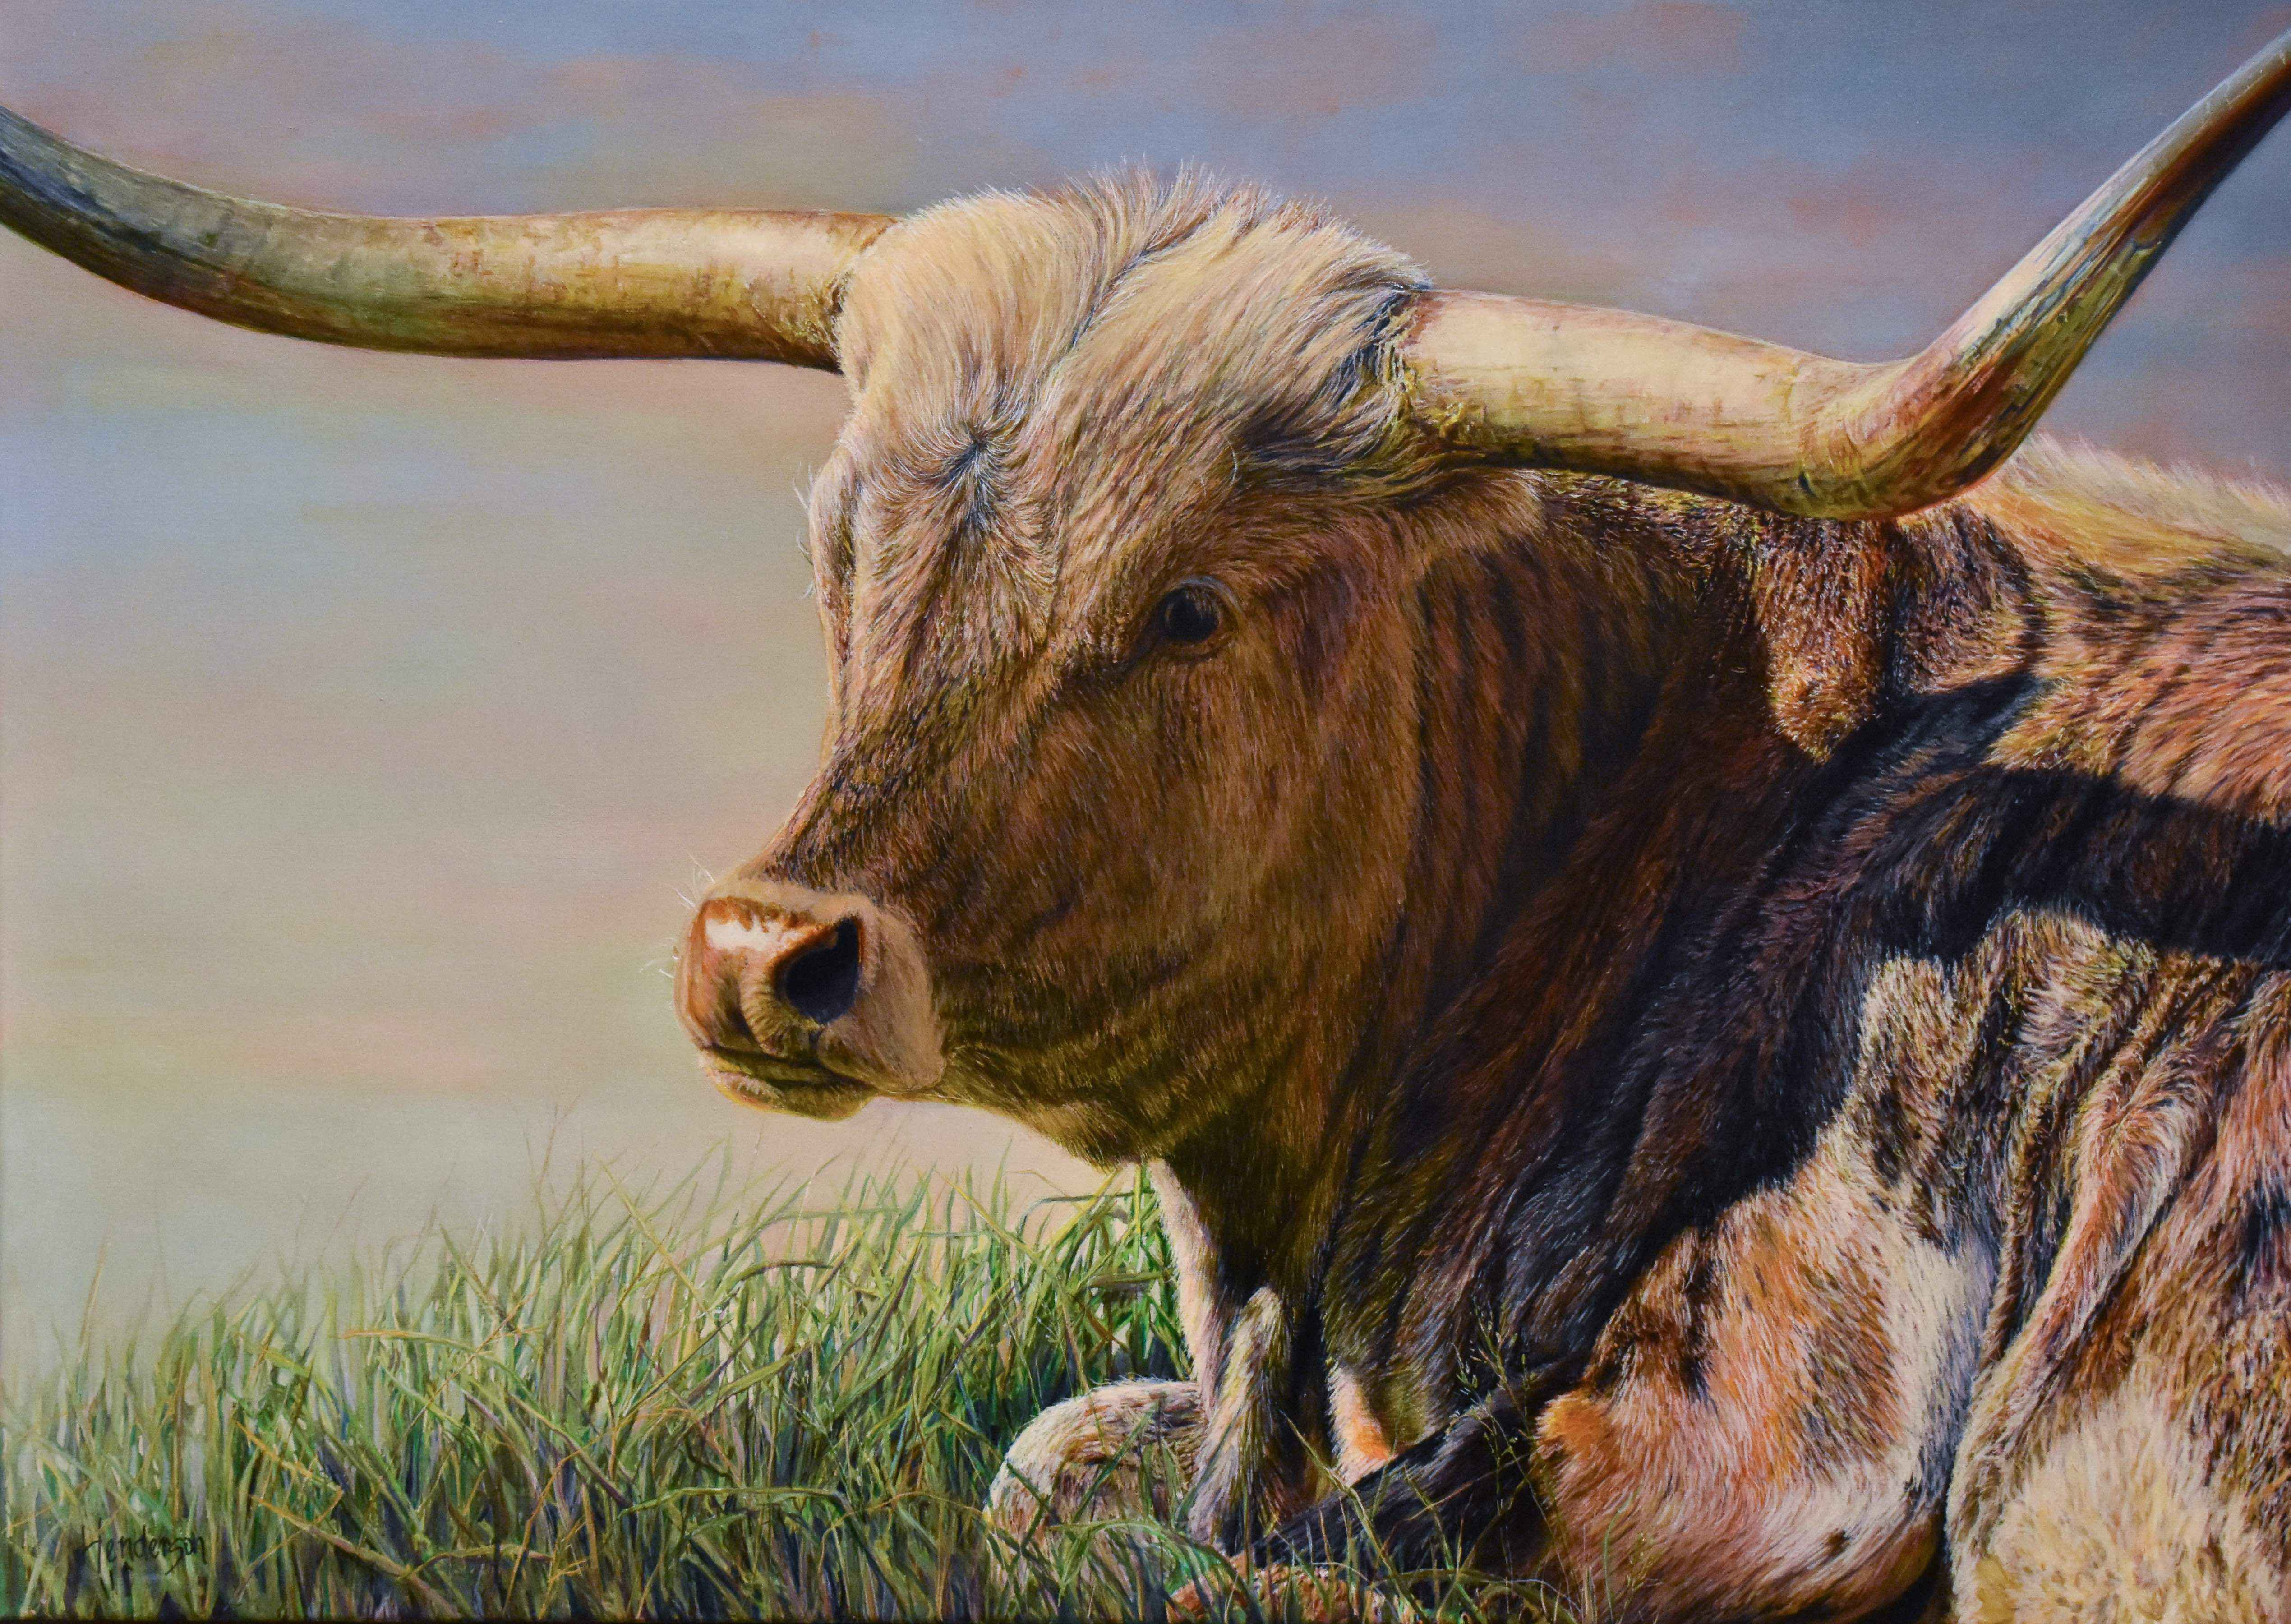 Shades of Texas by  Kris Henderson - Masterpiece Online